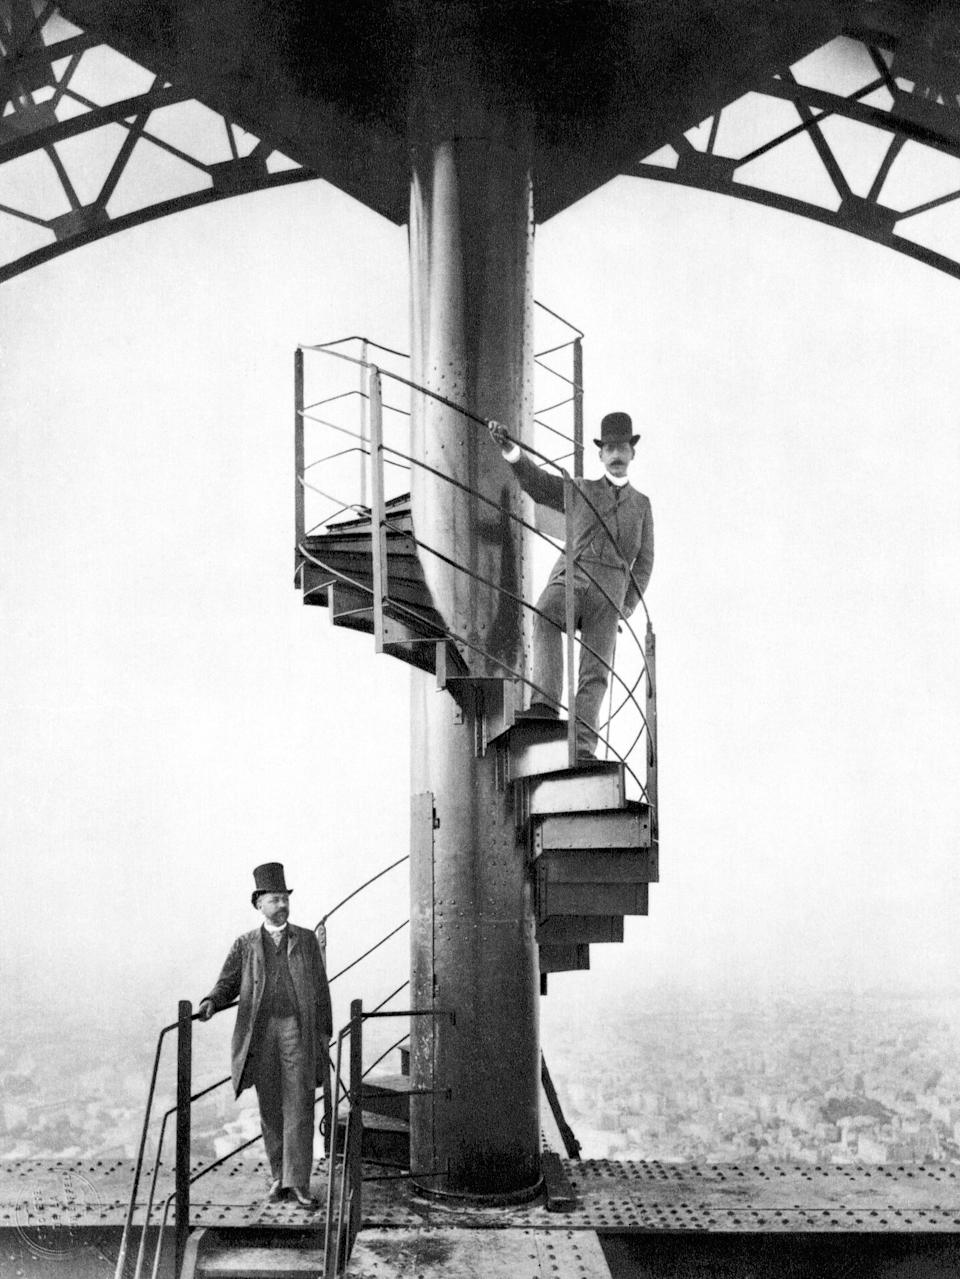 Gustave Eiffel (left) and a friend explore the newly built Eiffel Tower in Paris in 1889, the year of the Centennial Exposition for which it was built.